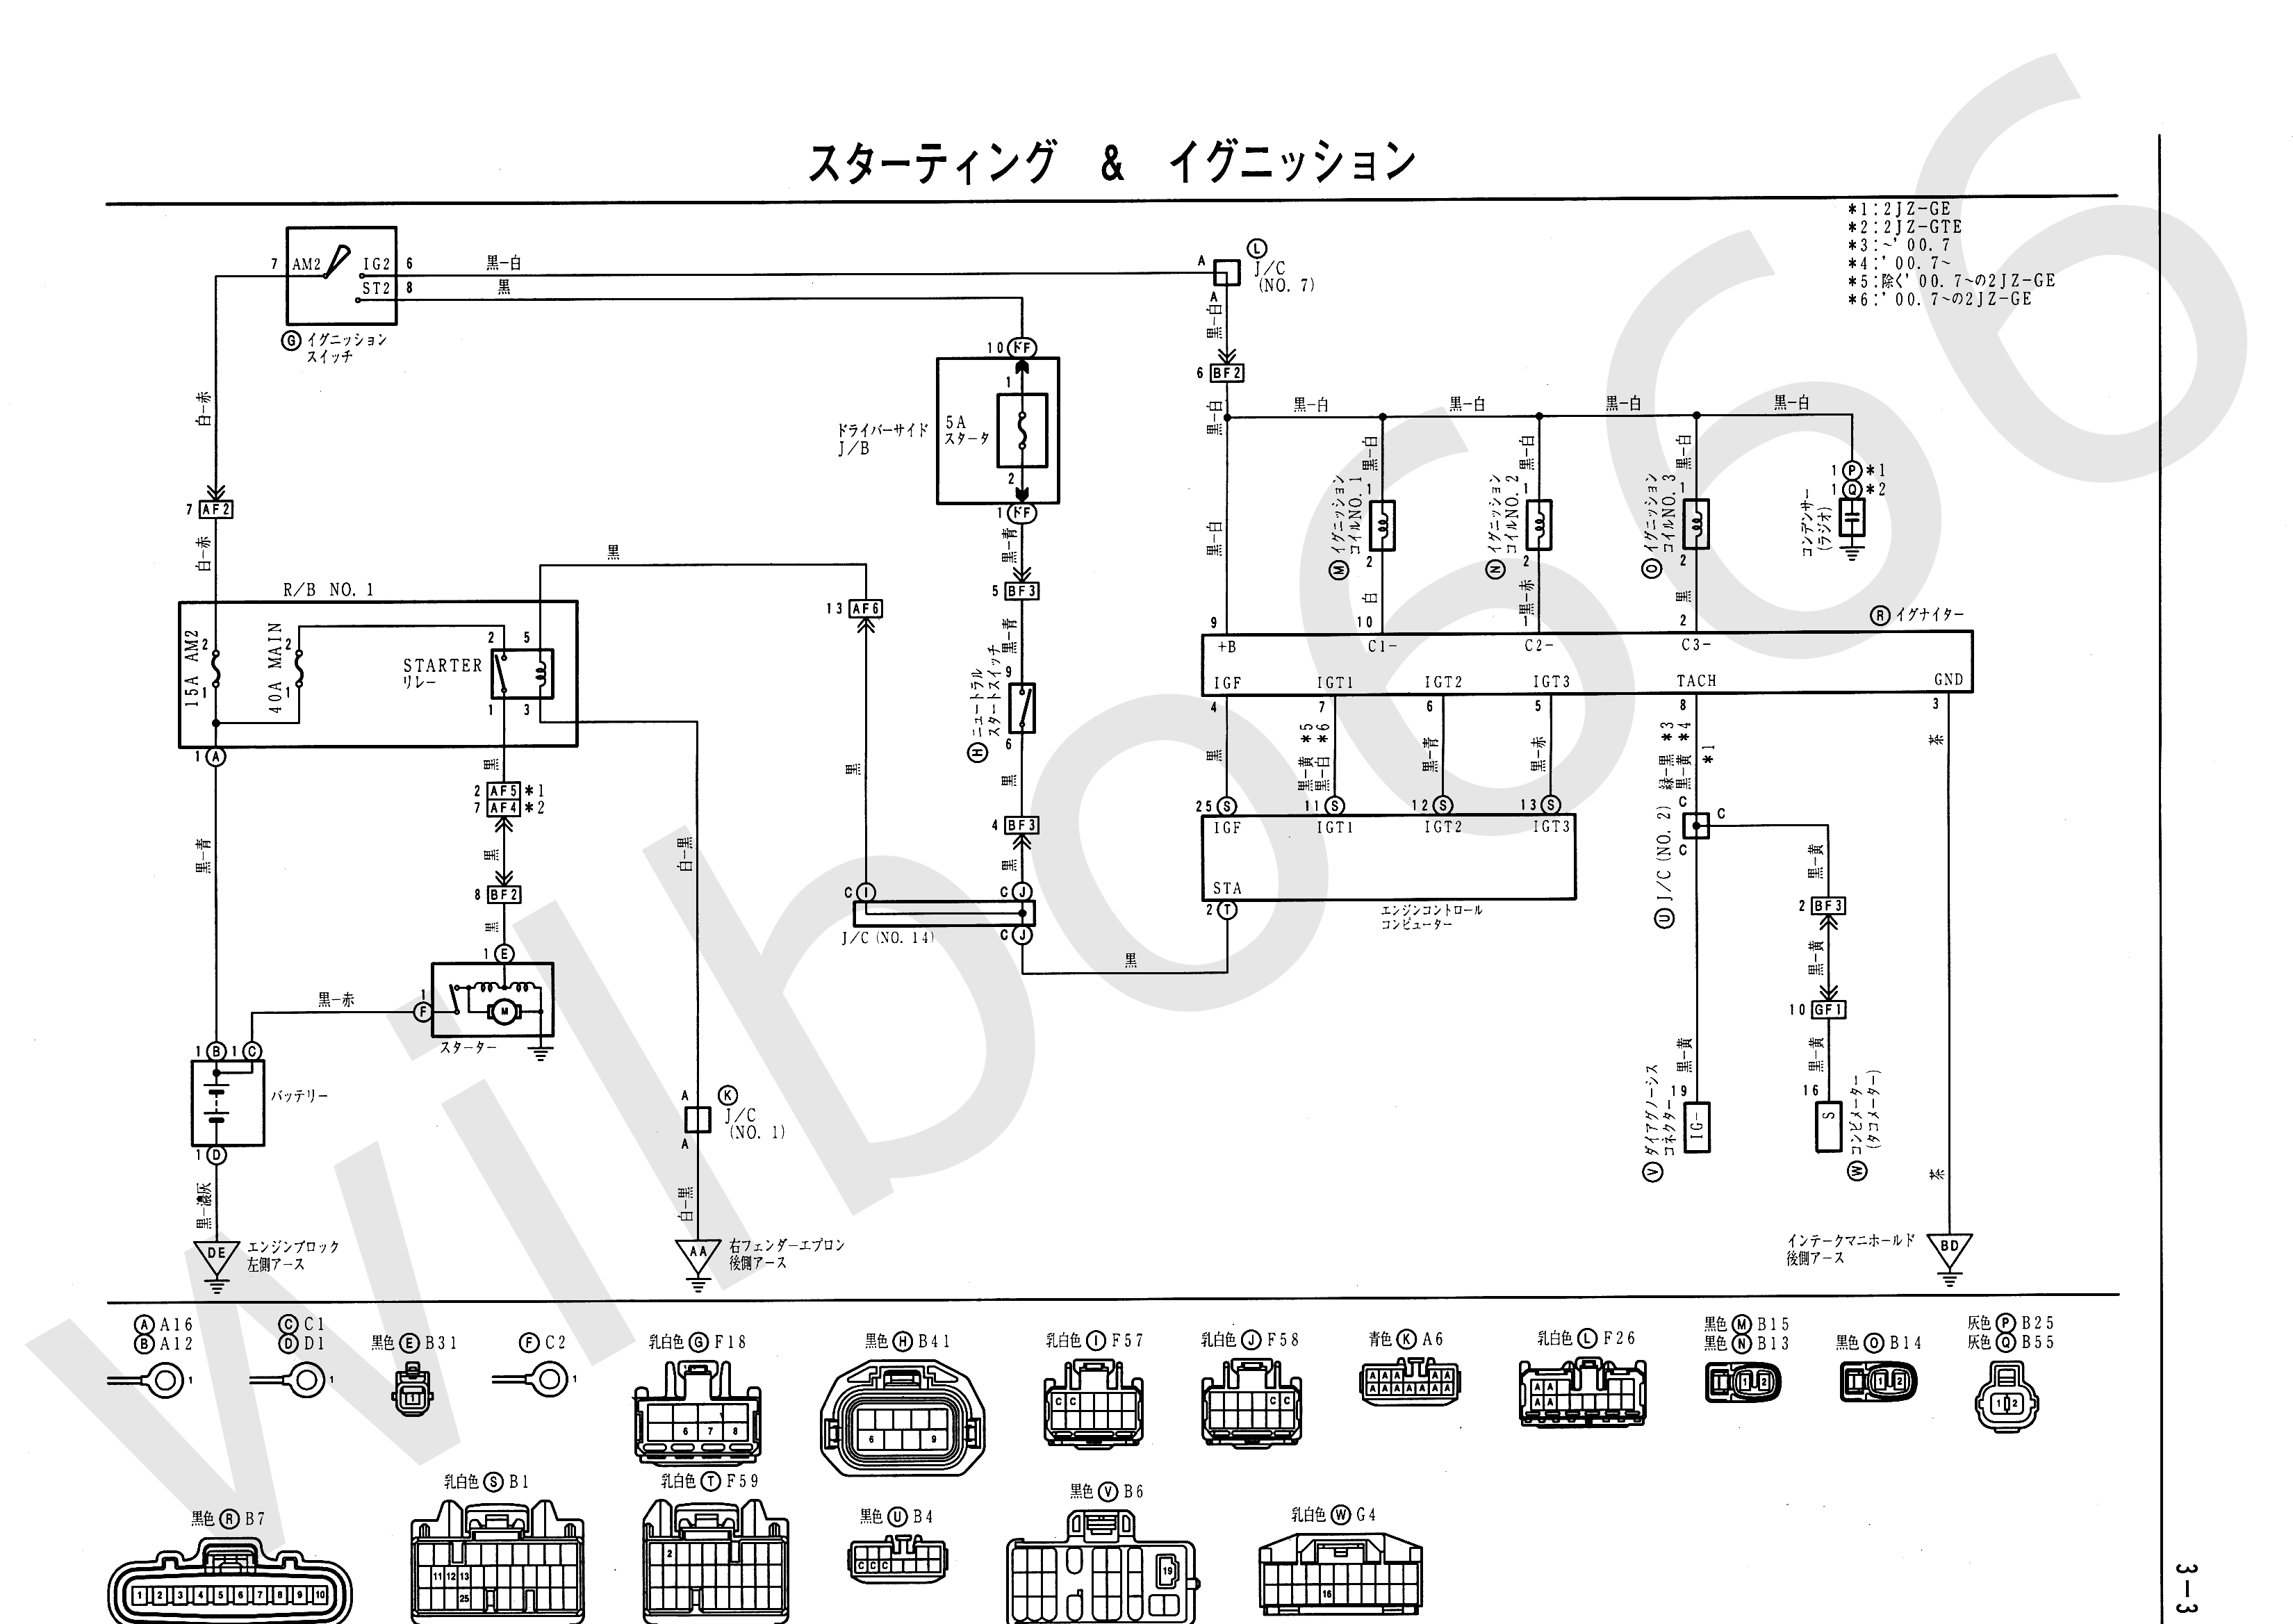 Wilbo666 2jz Gte Vvti Jzs161 Aristo Engine Wiring 4 Post Clutch Solenoid Diagram Toyota Diagrams